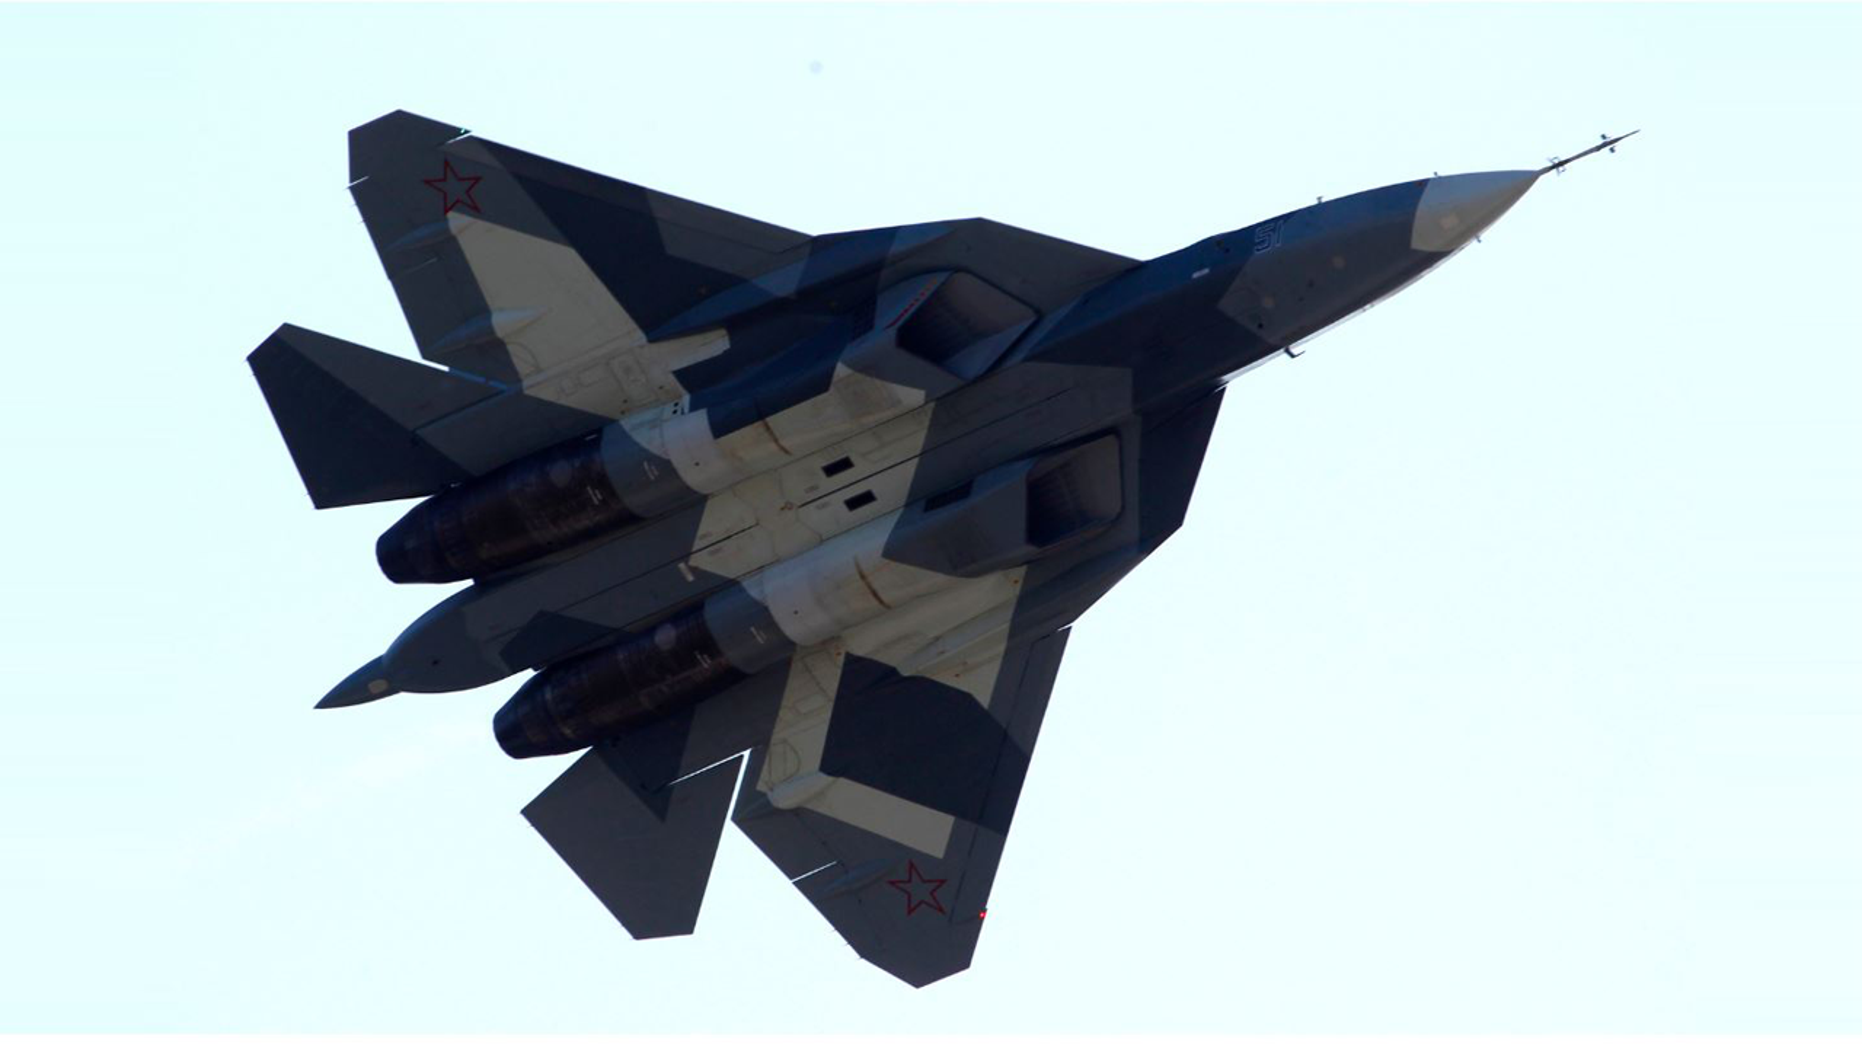 U.S. and Russian jets entered the same battlespace over Syria on Saturday, according to the U.S. military.